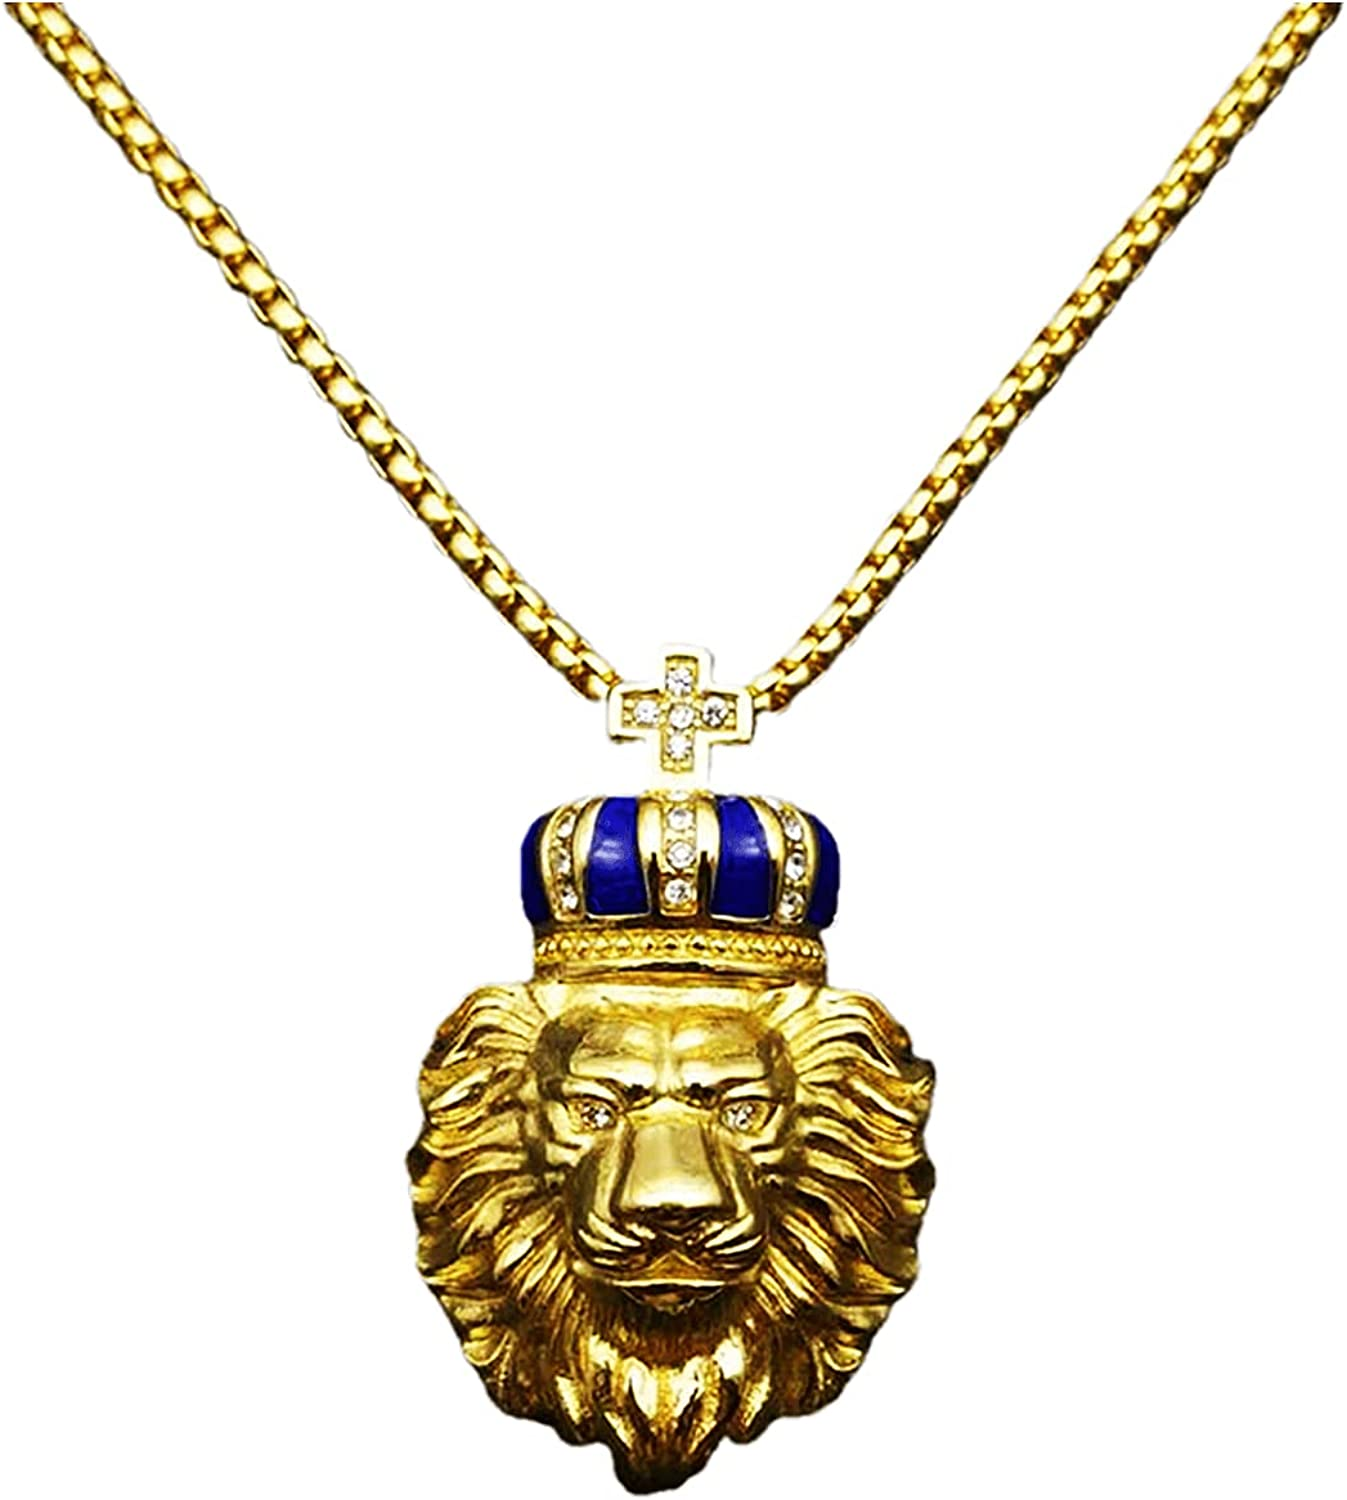 Ouvia Crown Leo Pendant Necklace Lion King Simba style Vintage Animal Stainless Steel Necklace Hip Hop Punk Rock Clubs Disco Halloween boys jewelry Cuban Link chain for men things for teens Iced Out